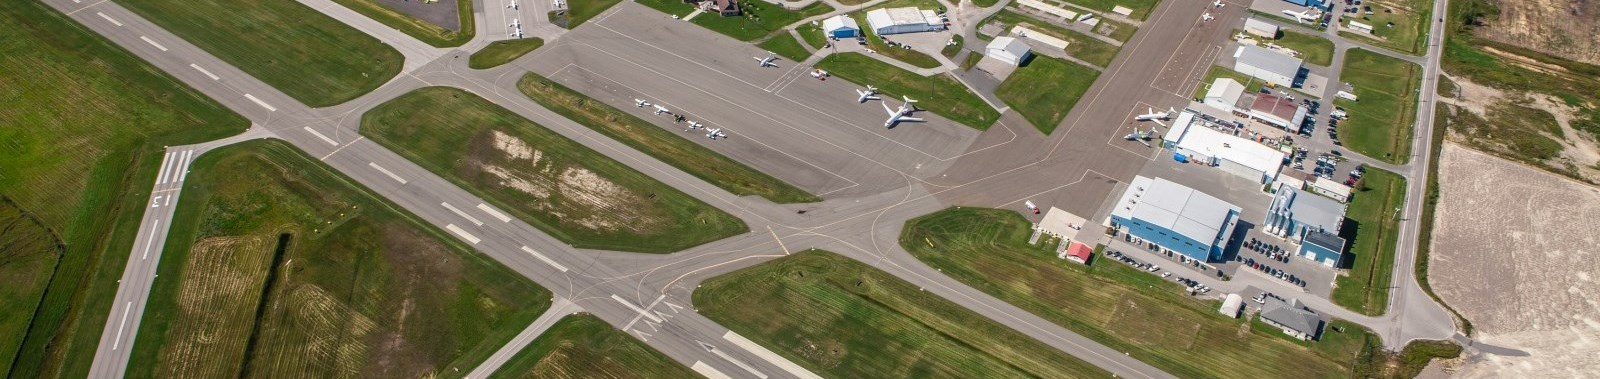 Peterborough Airport aerial photo